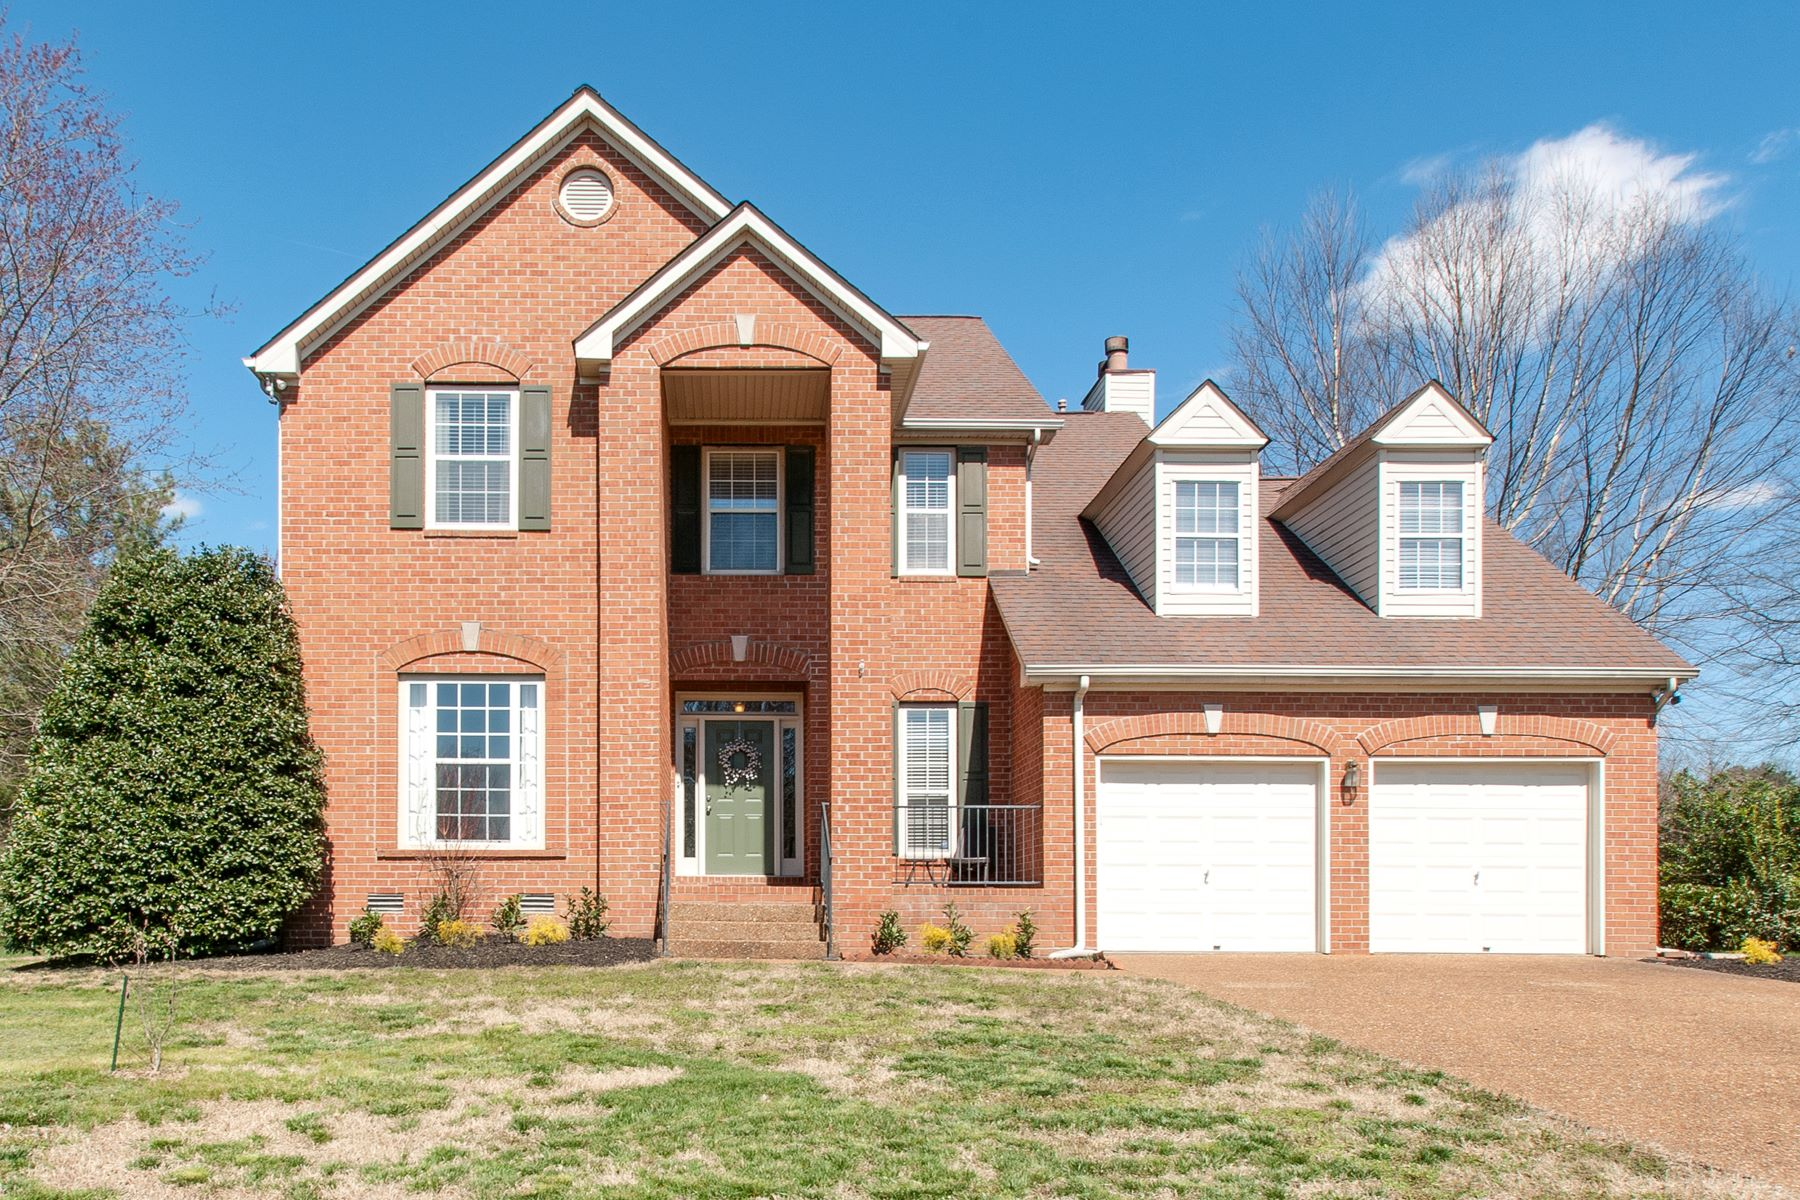 Single Family Home for Sale at Beautiful, Move-In Ready Home on Beautiful Corner Lot! 2048 Bratton Place Franklin, Tennessee 37067 United States